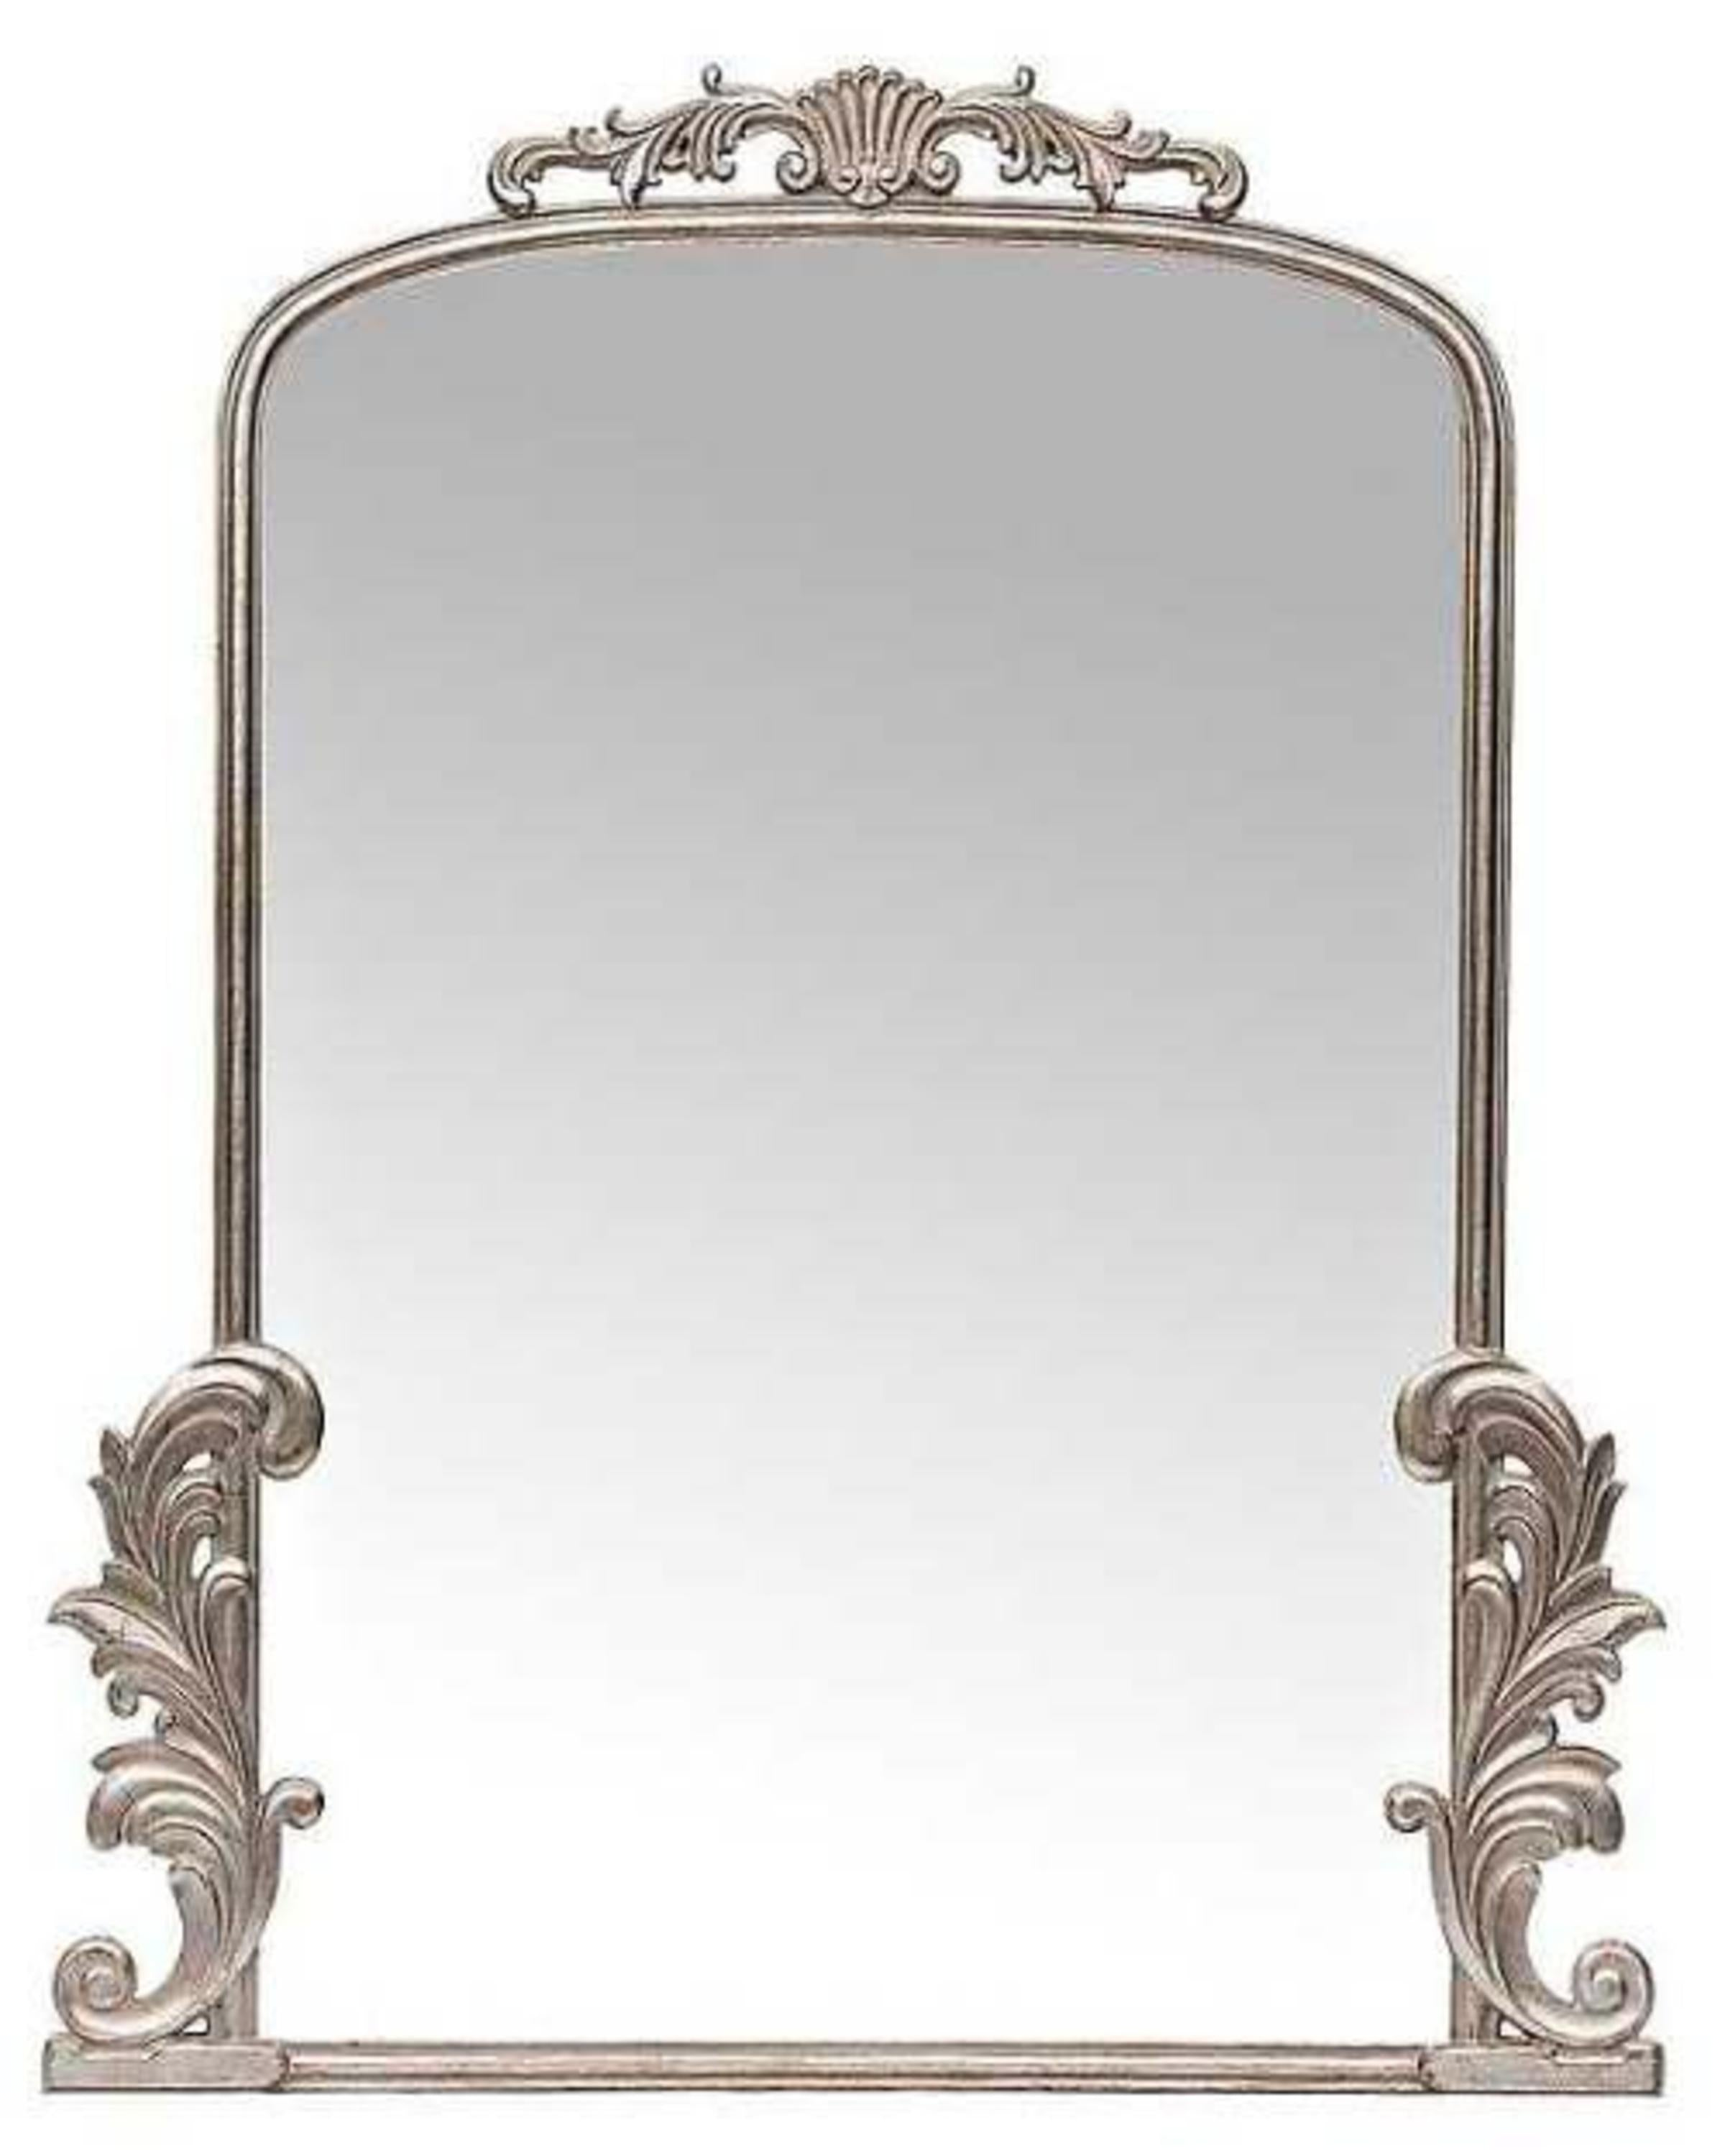 WARI CLASSIC SILVER MIRROR- ANGIE'S INDIA ANGIE HOMES